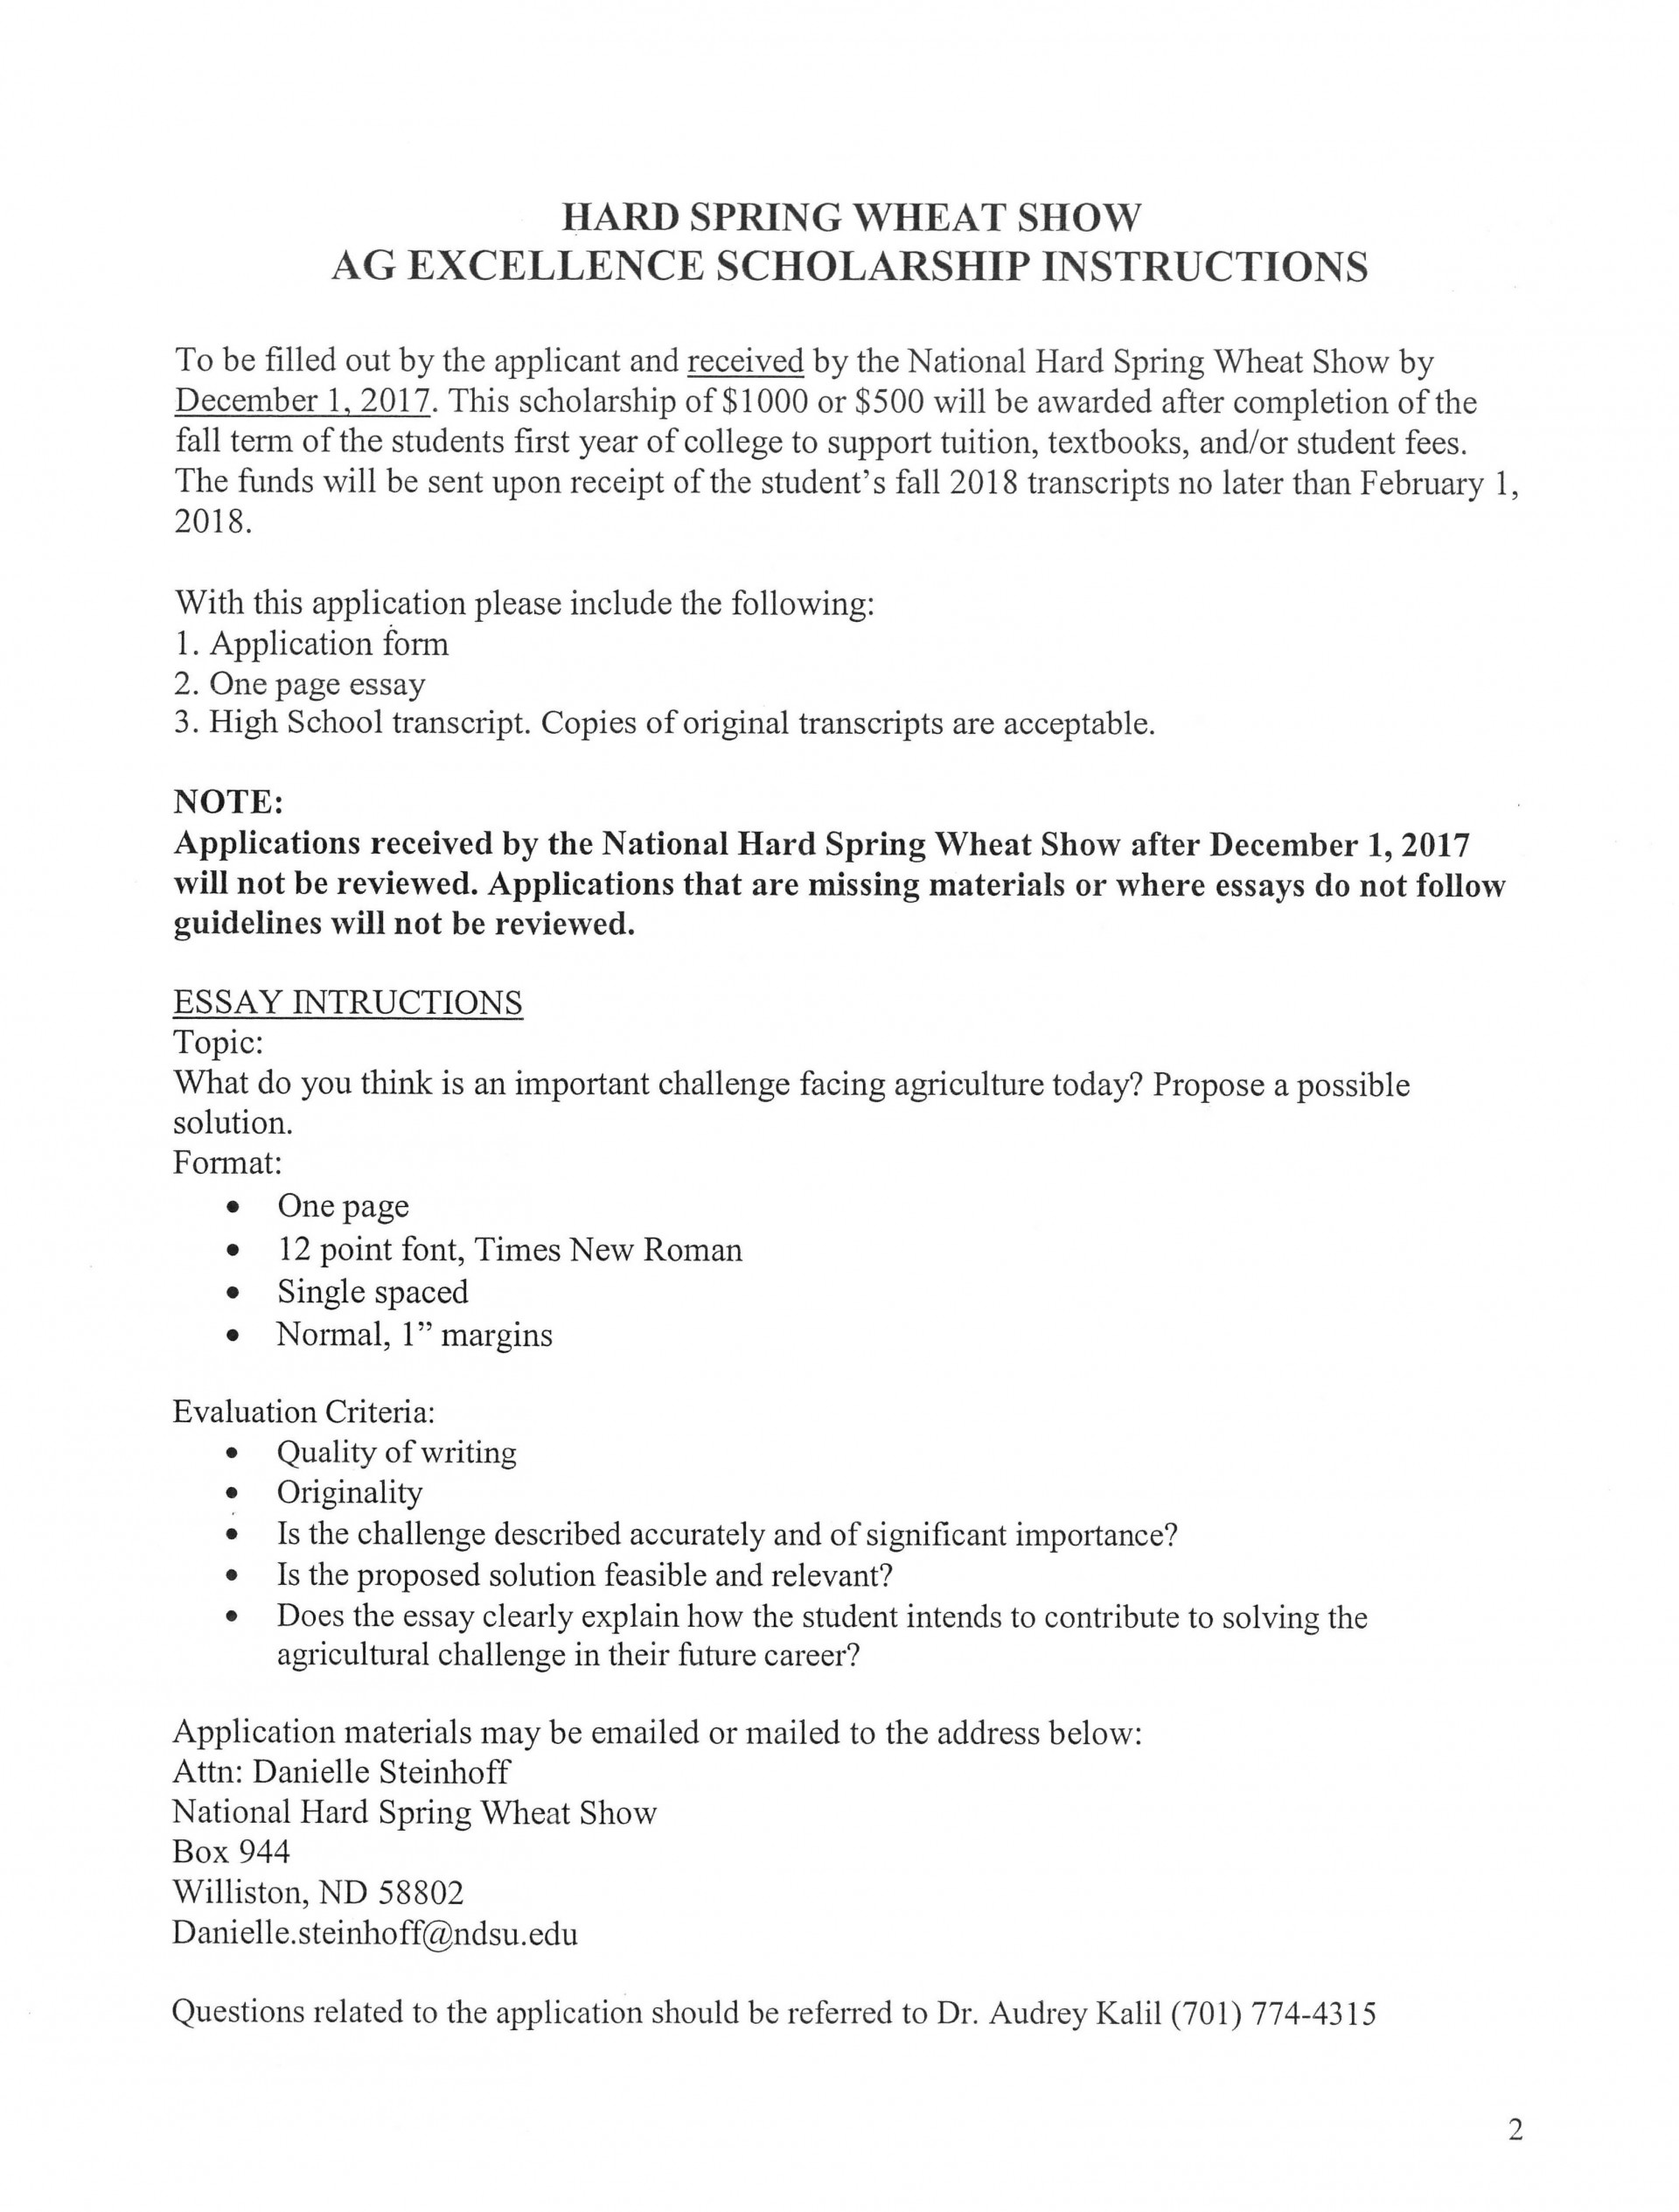 004 Essay Example Page 2 Scholarships Wonderful 2017 No College Canada 1920